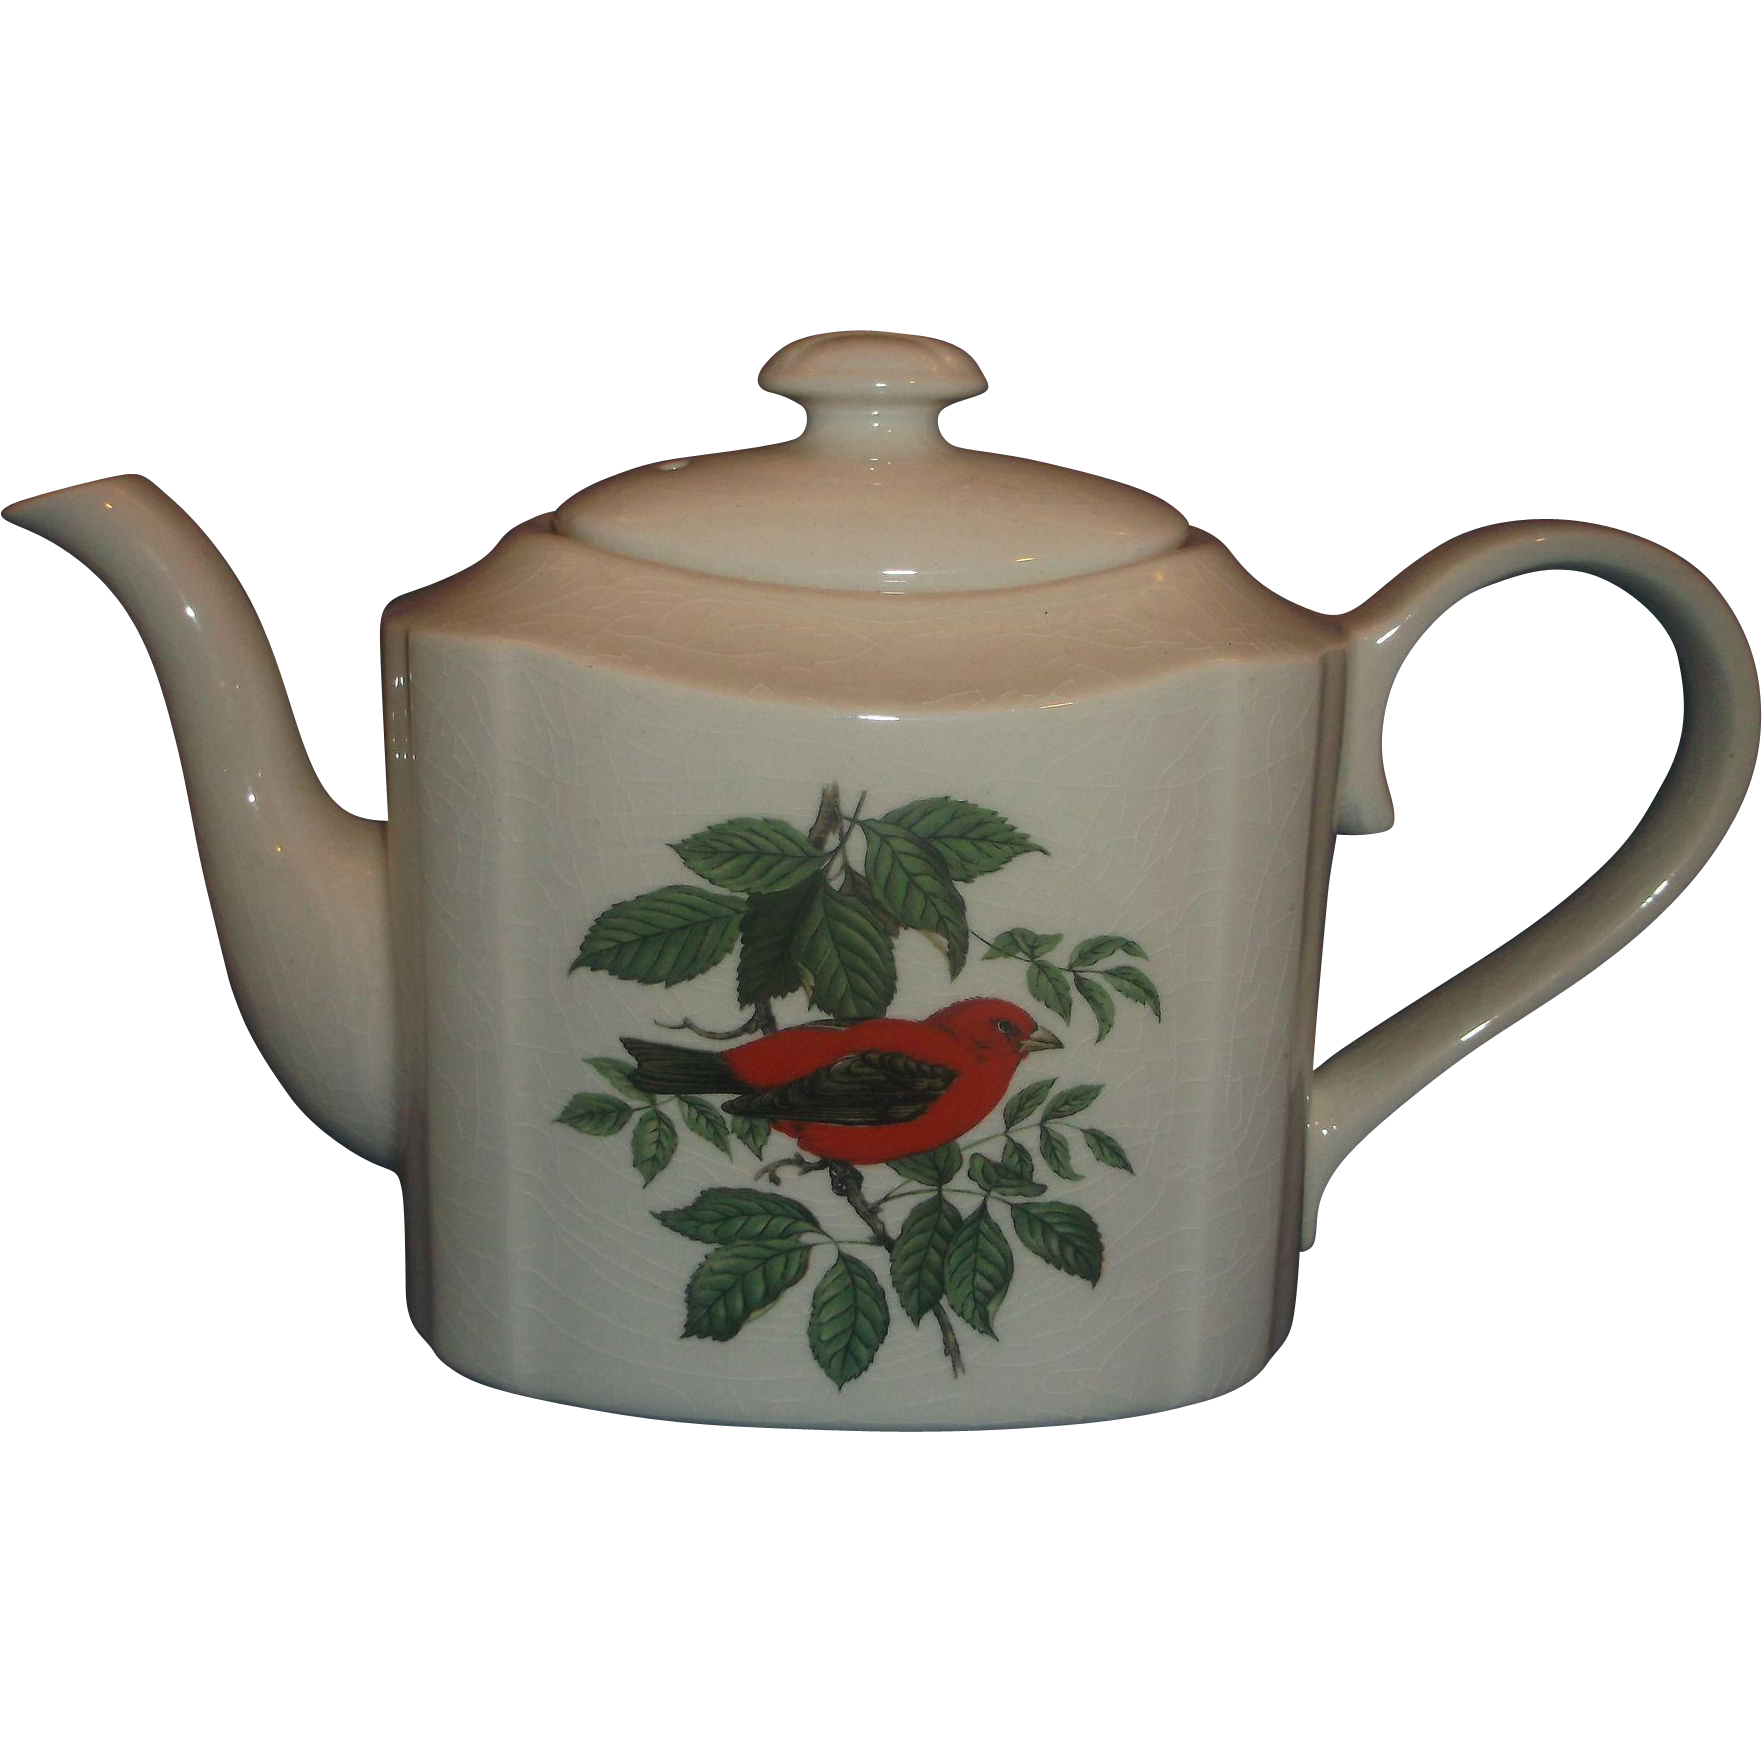 Red Bird House of Goebel Arthur Wood Staffordshire England Teapot Rectangular Scarlet Tanager